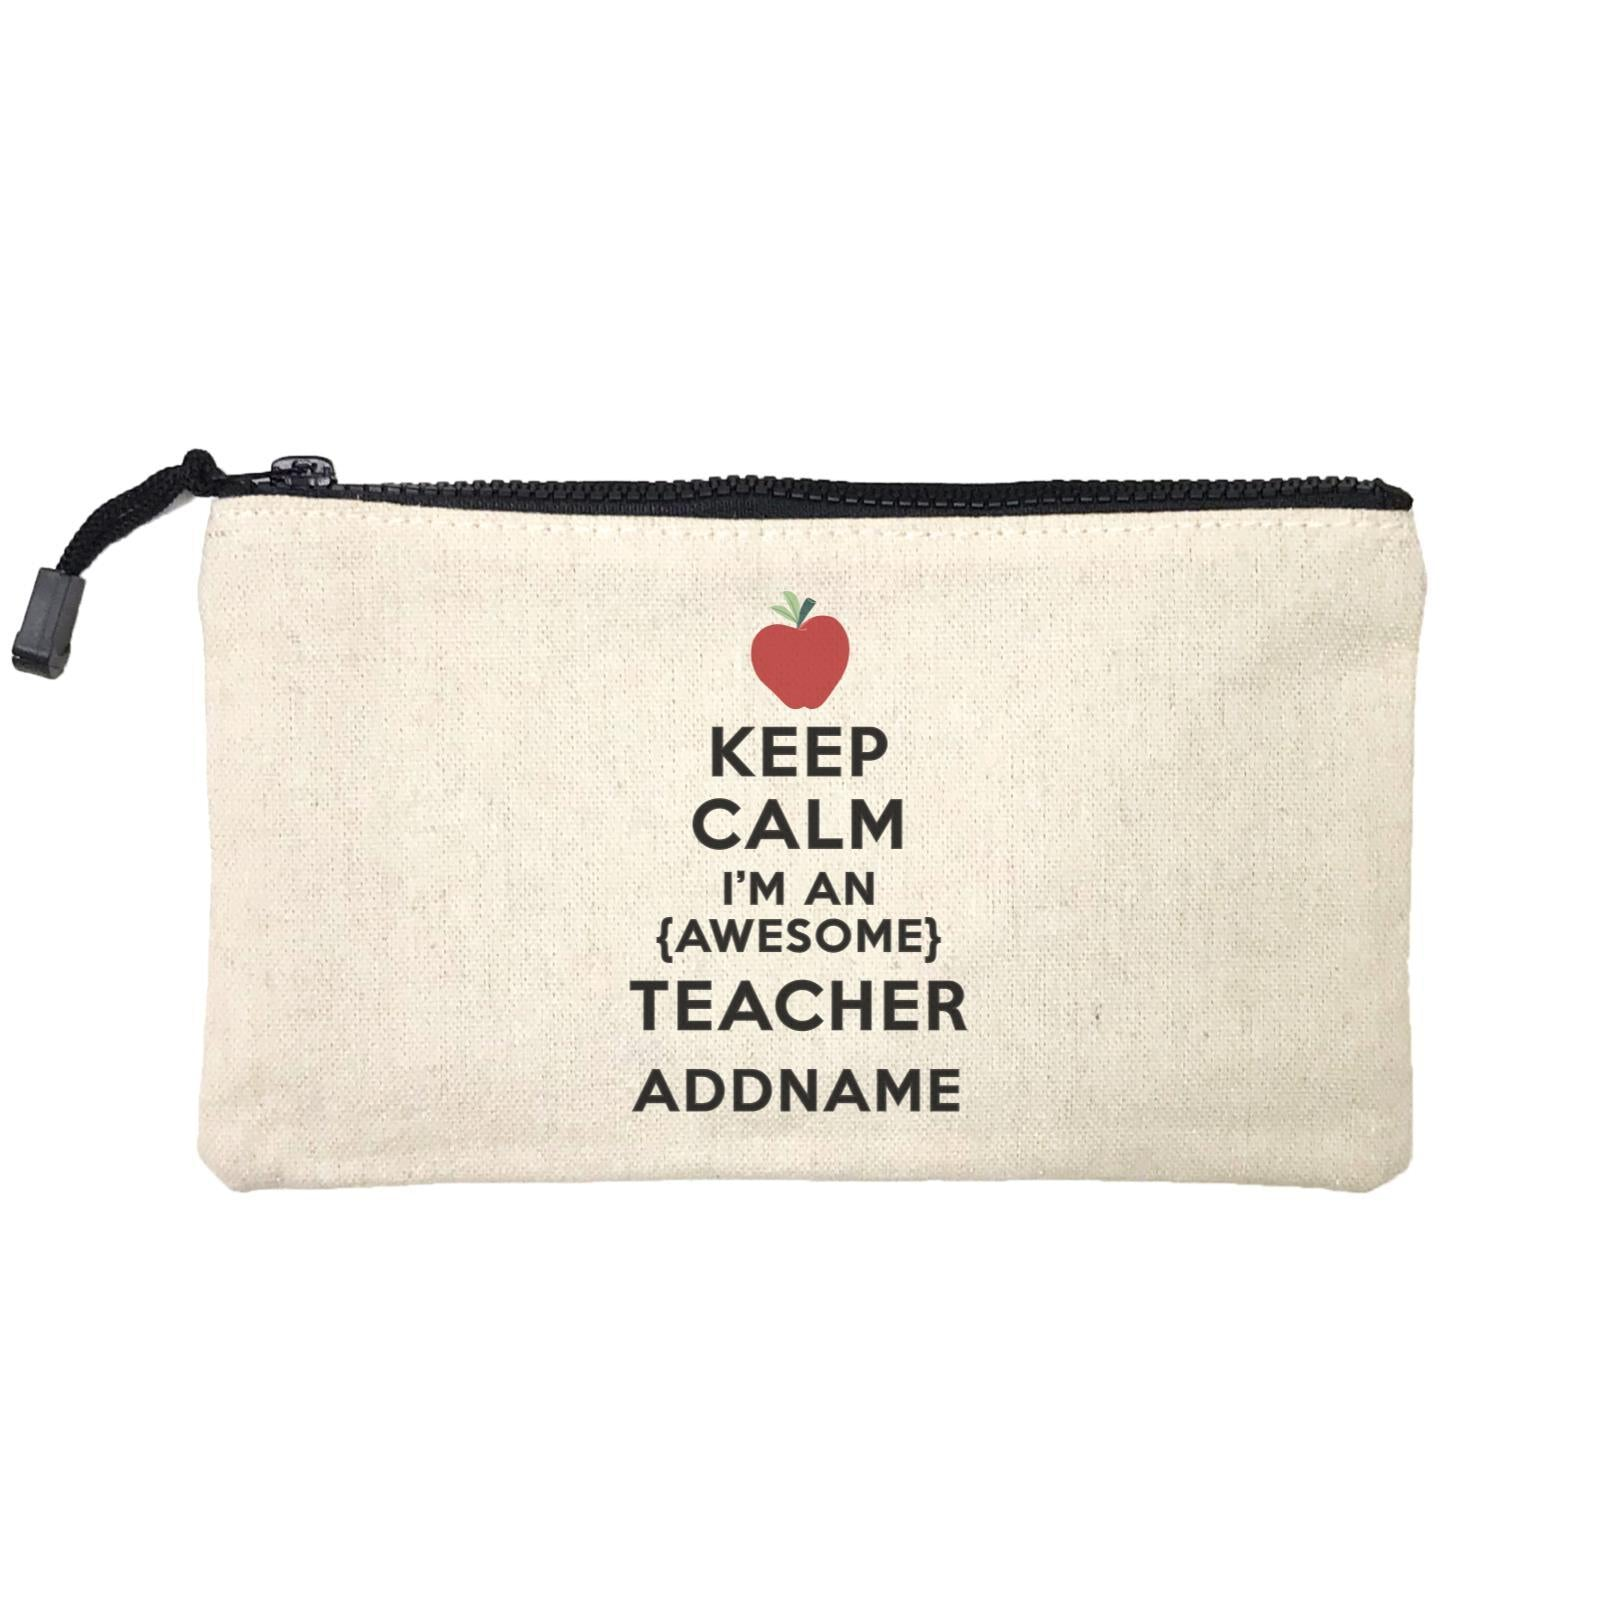 Teacher Quotes Keep Calm I'm An Awesome Teacher Addname Mini Accessories Stationery Pouch